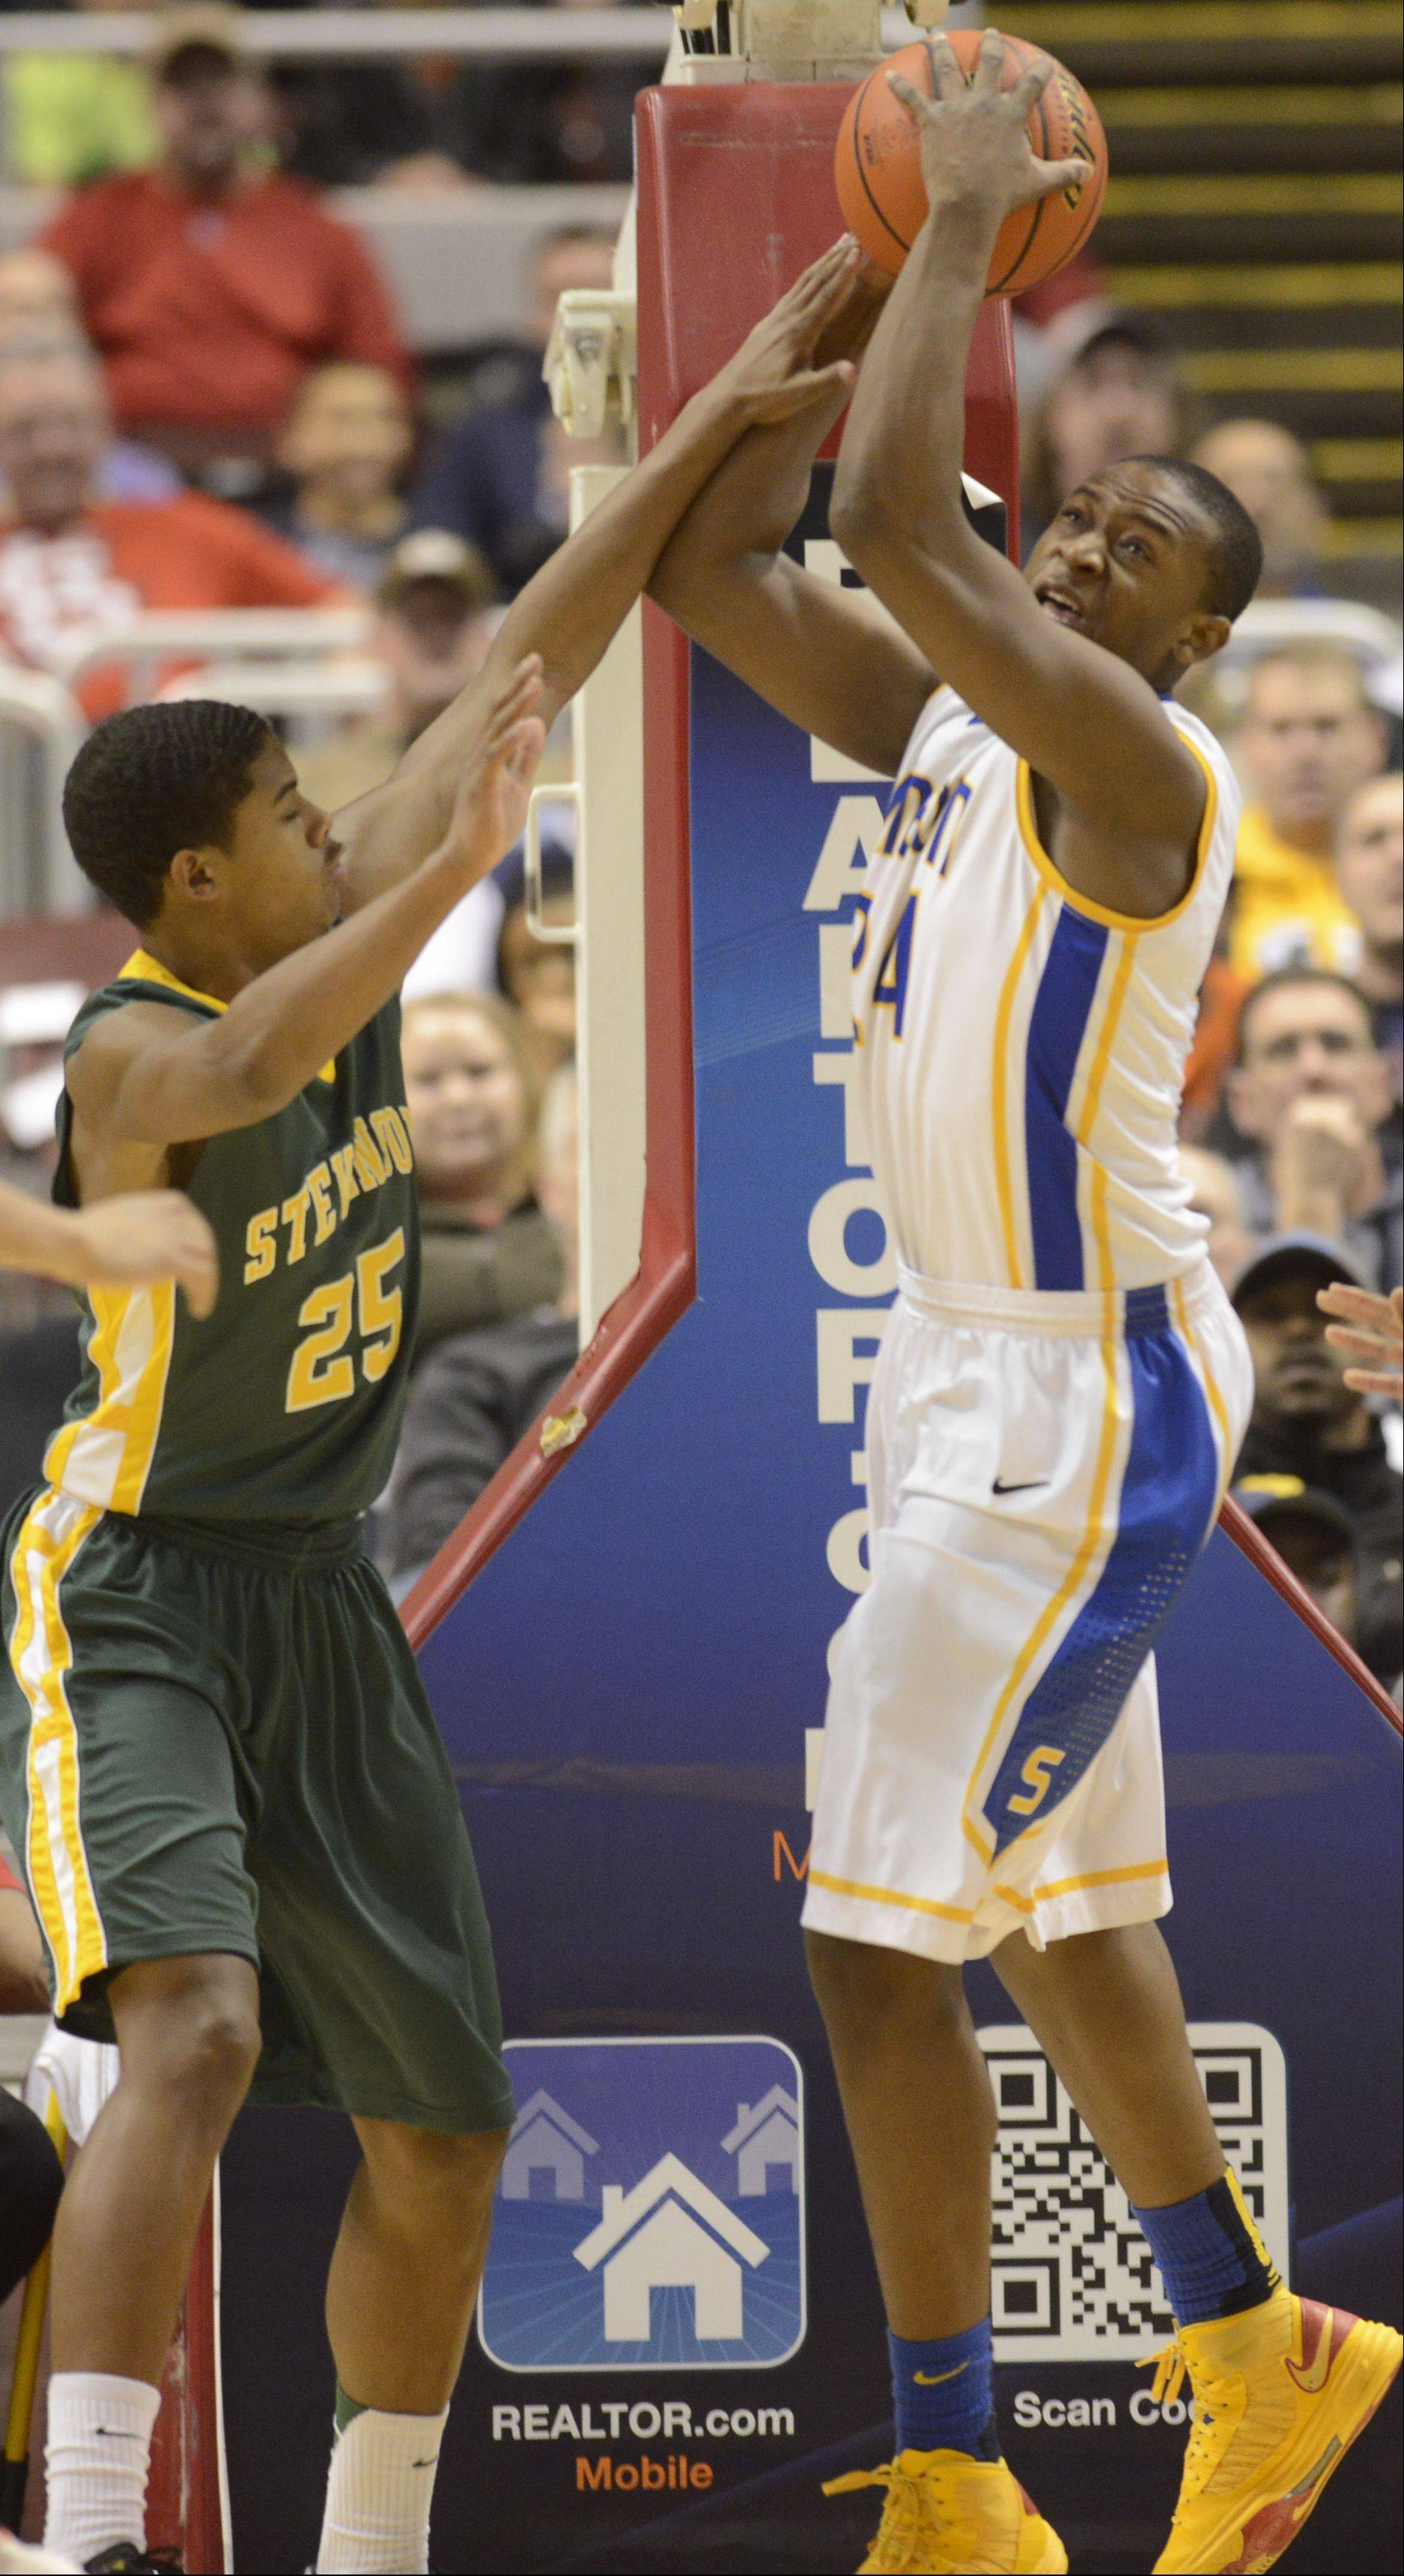 Stevenson's Cameron Green, left, defends Simeon's Kendall Pollard during the Class 4A state championship game Saturday in Peoria.